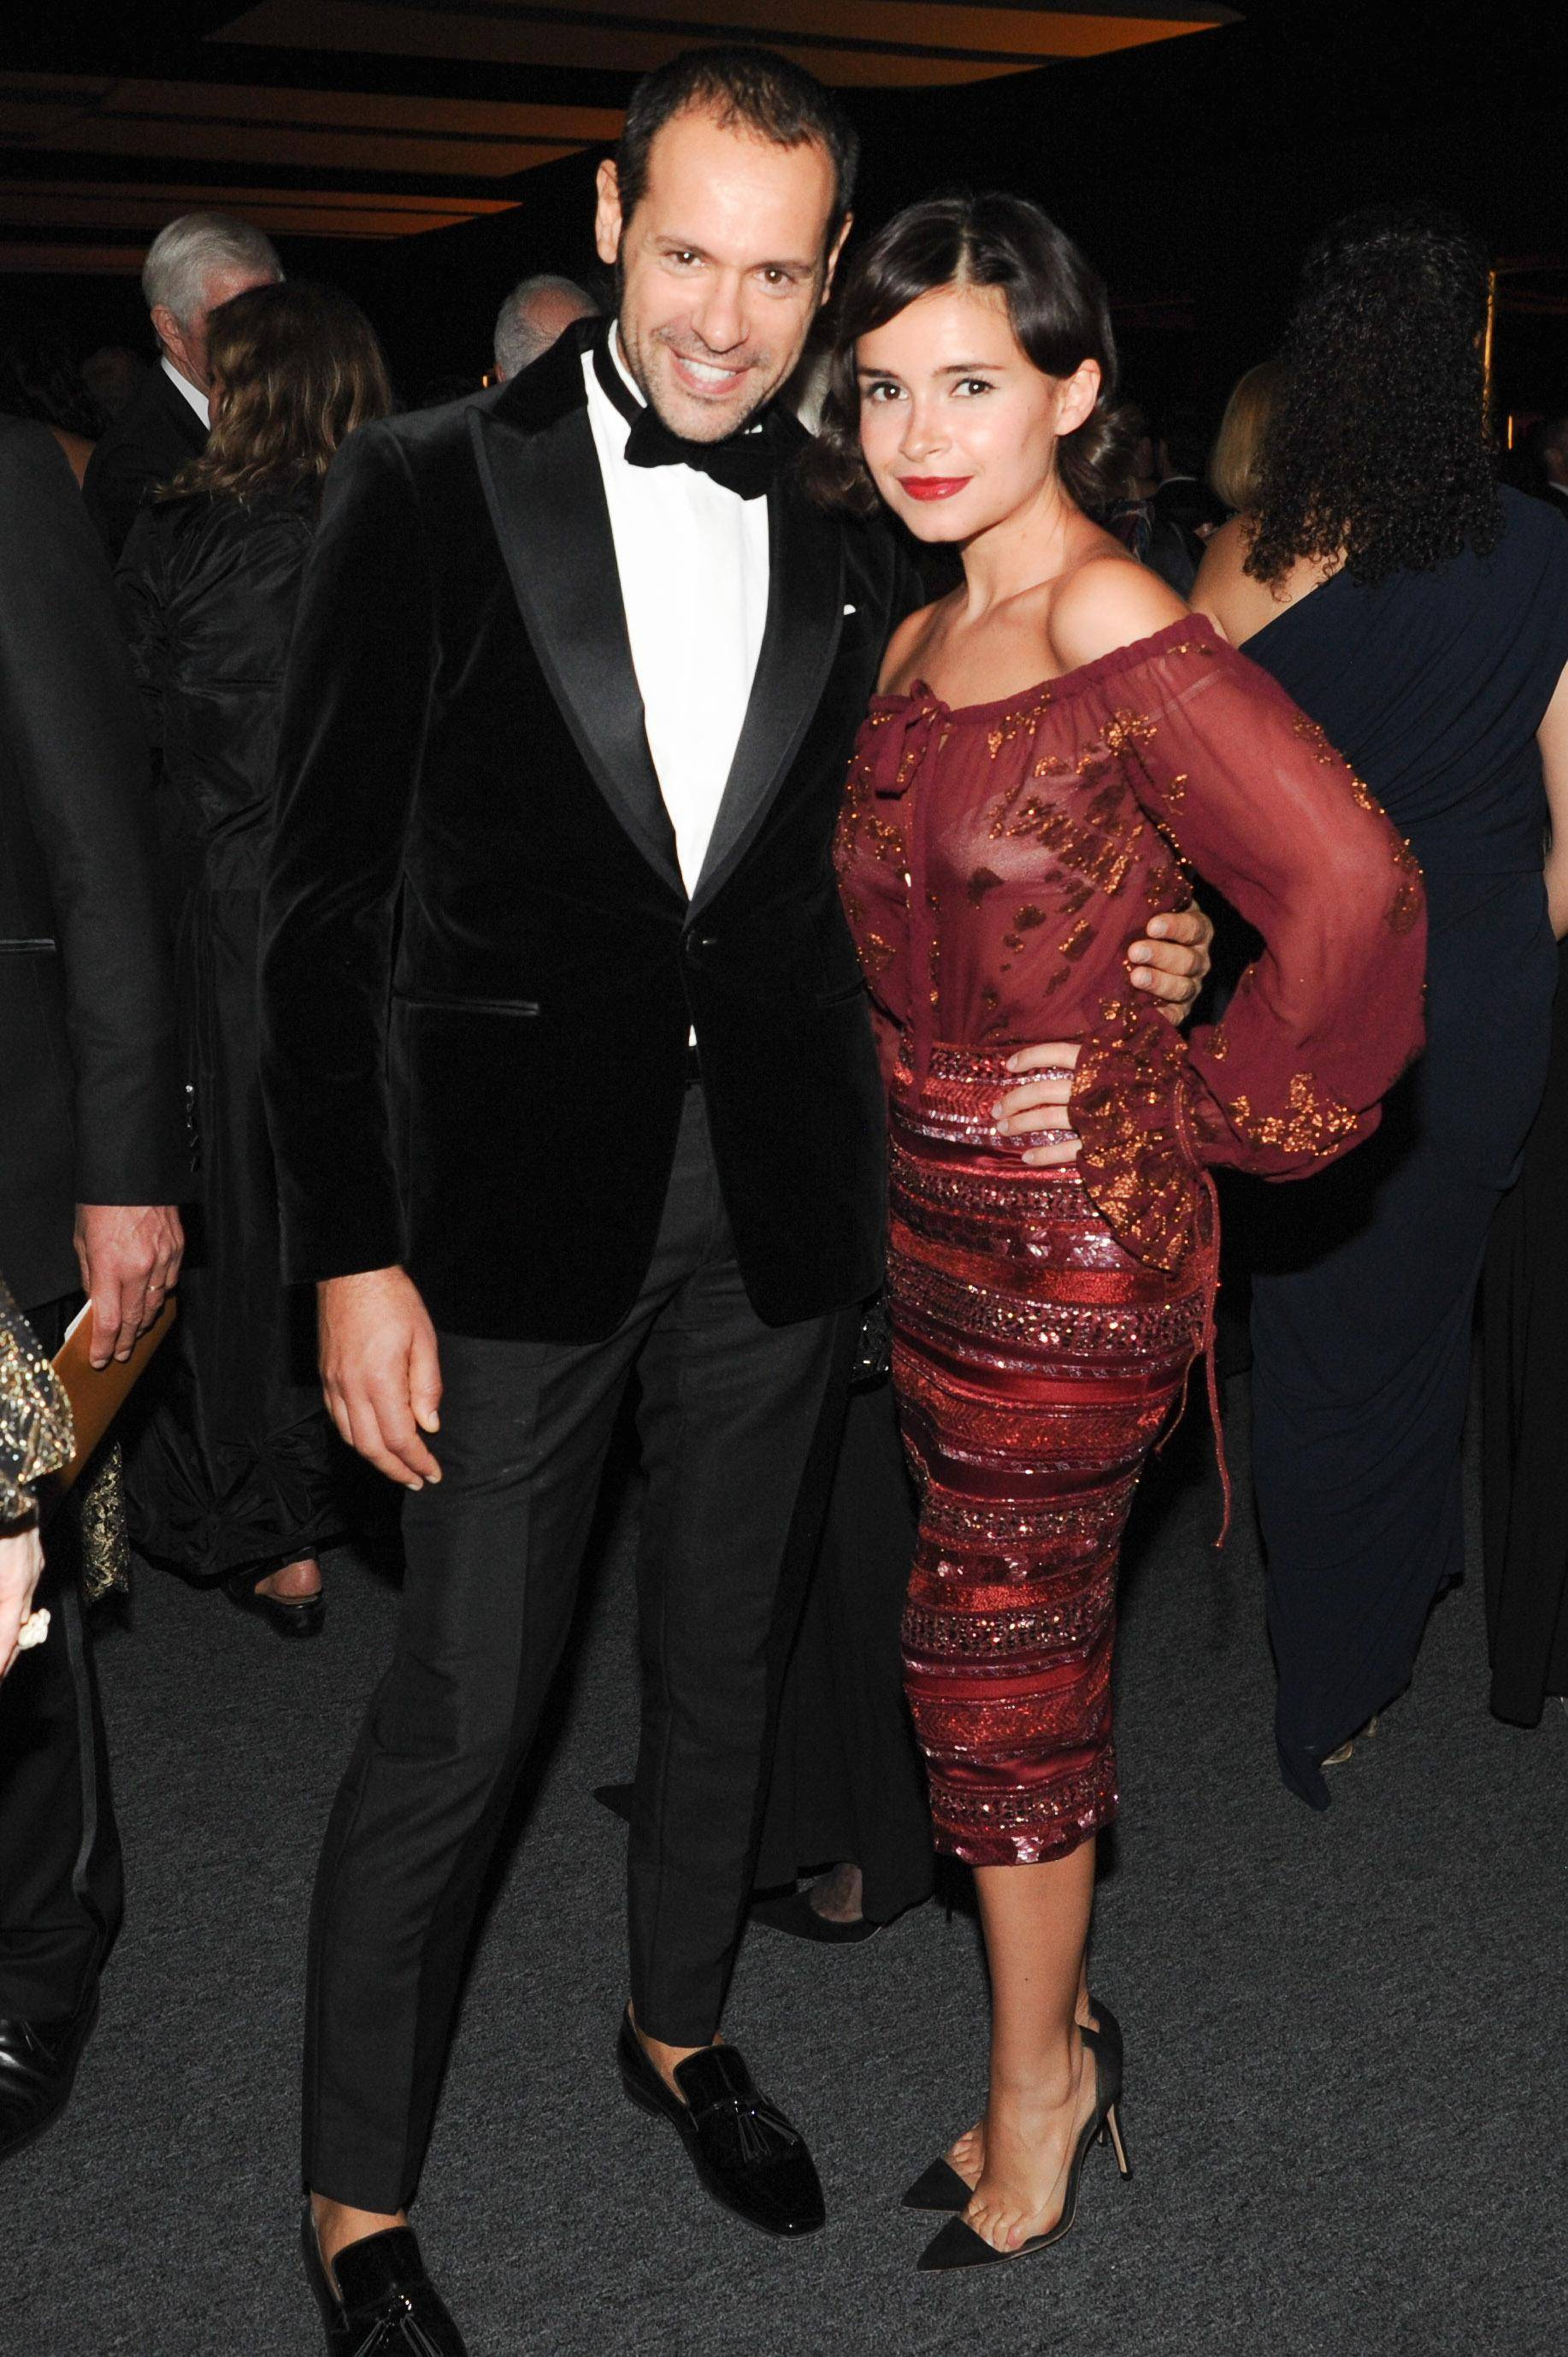 SALVATORE FERRAGAMO Sponsors the Inaugural Gala of the WALLIS ANNENBERG CENTER FOR THE PERFORMING ARTS- Part II